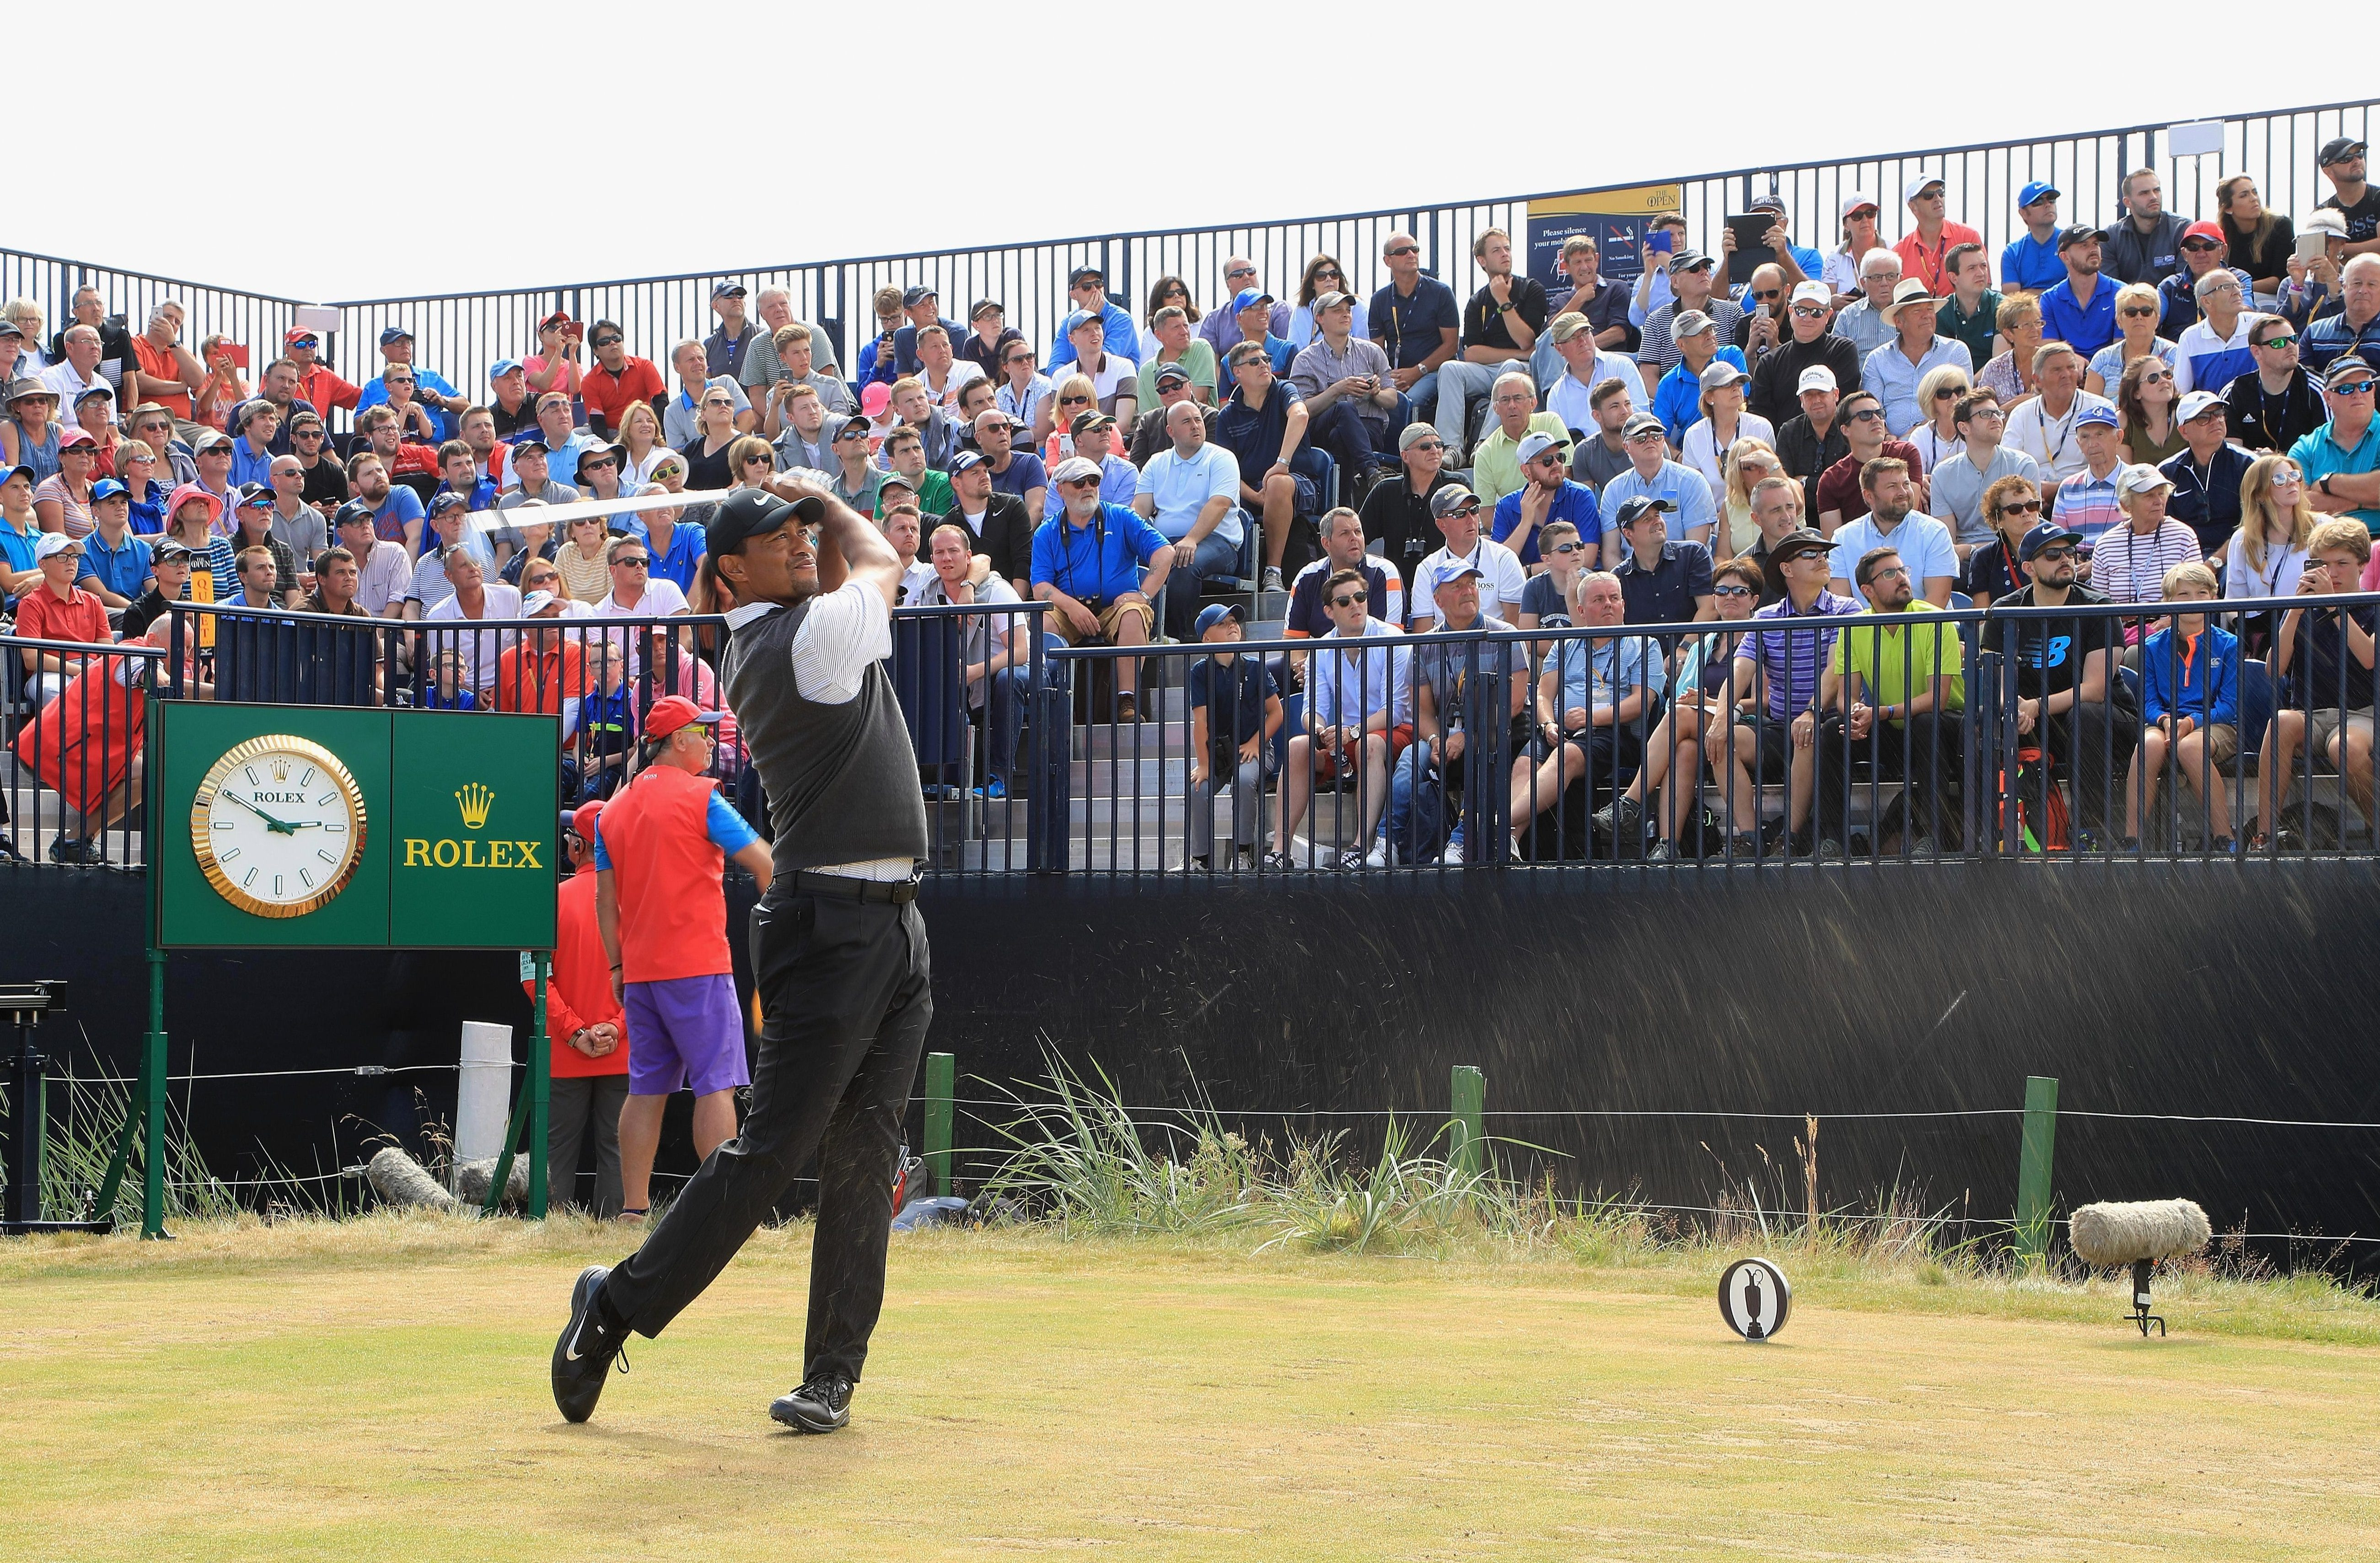 Fans flocked to see the superstar find his best form